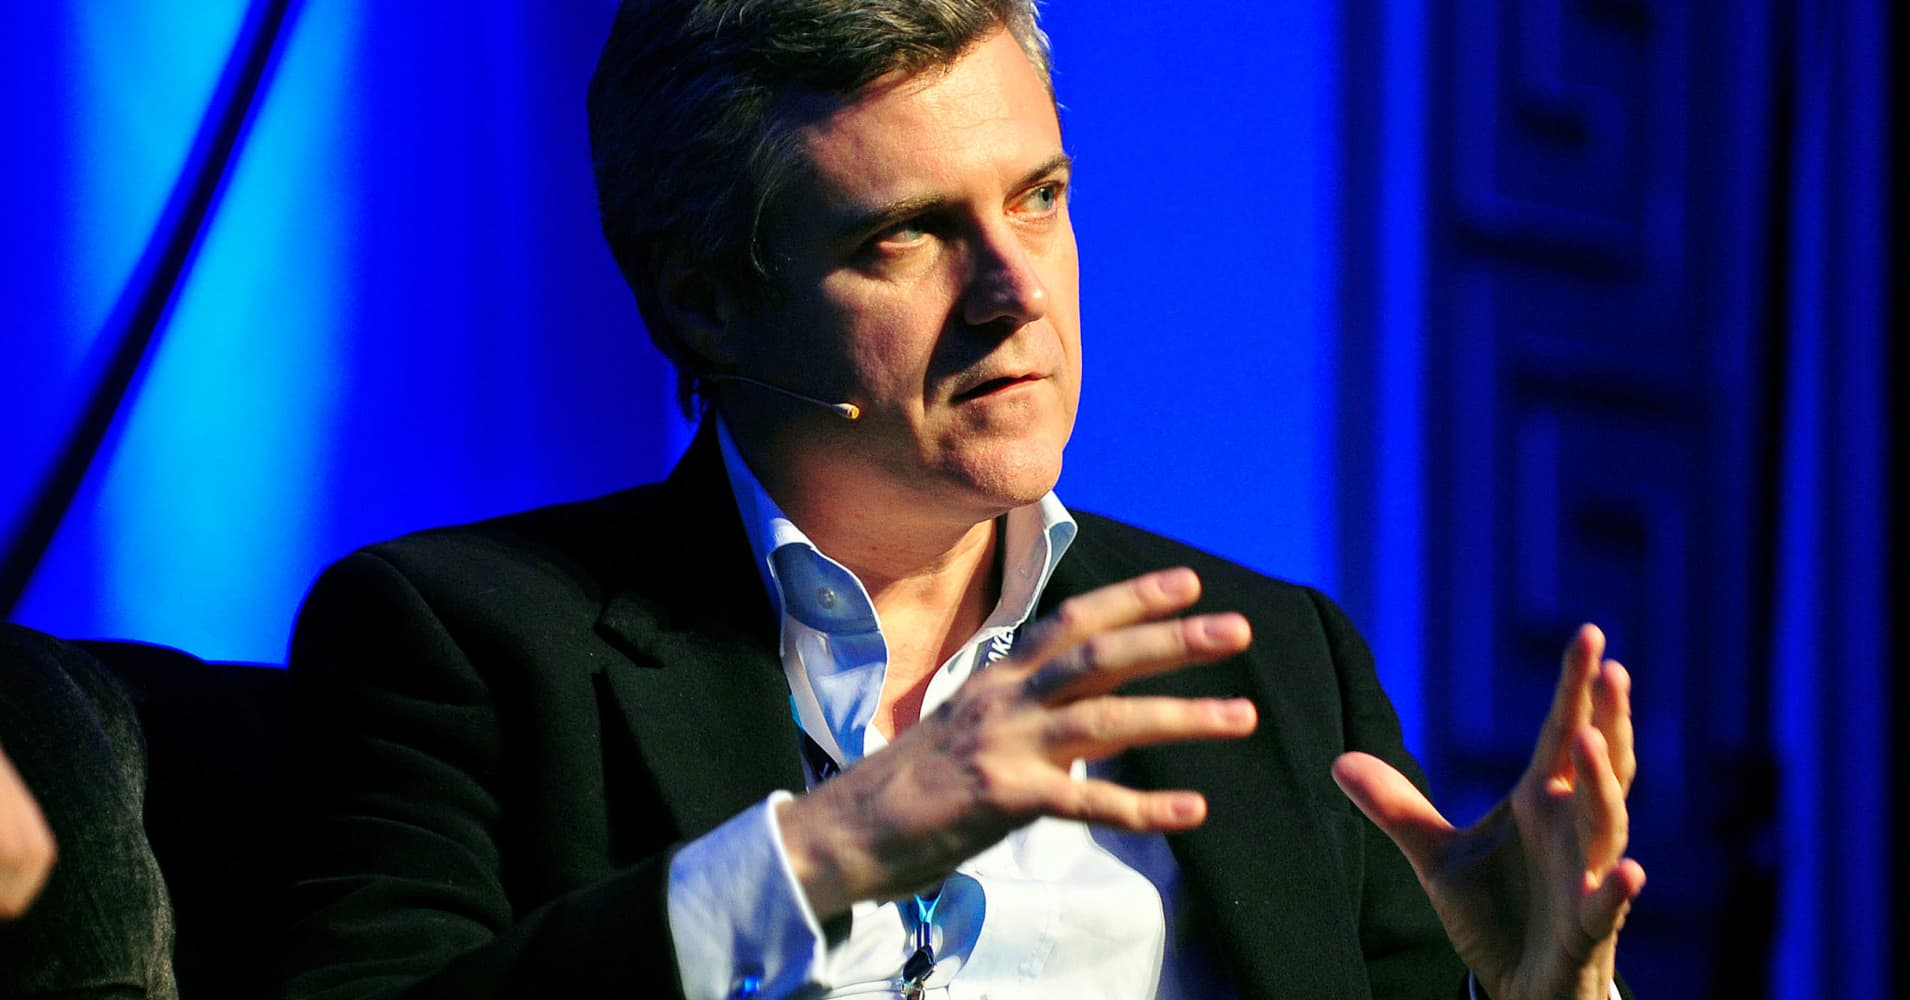 WPP's new boss nudges net sales outlook higher